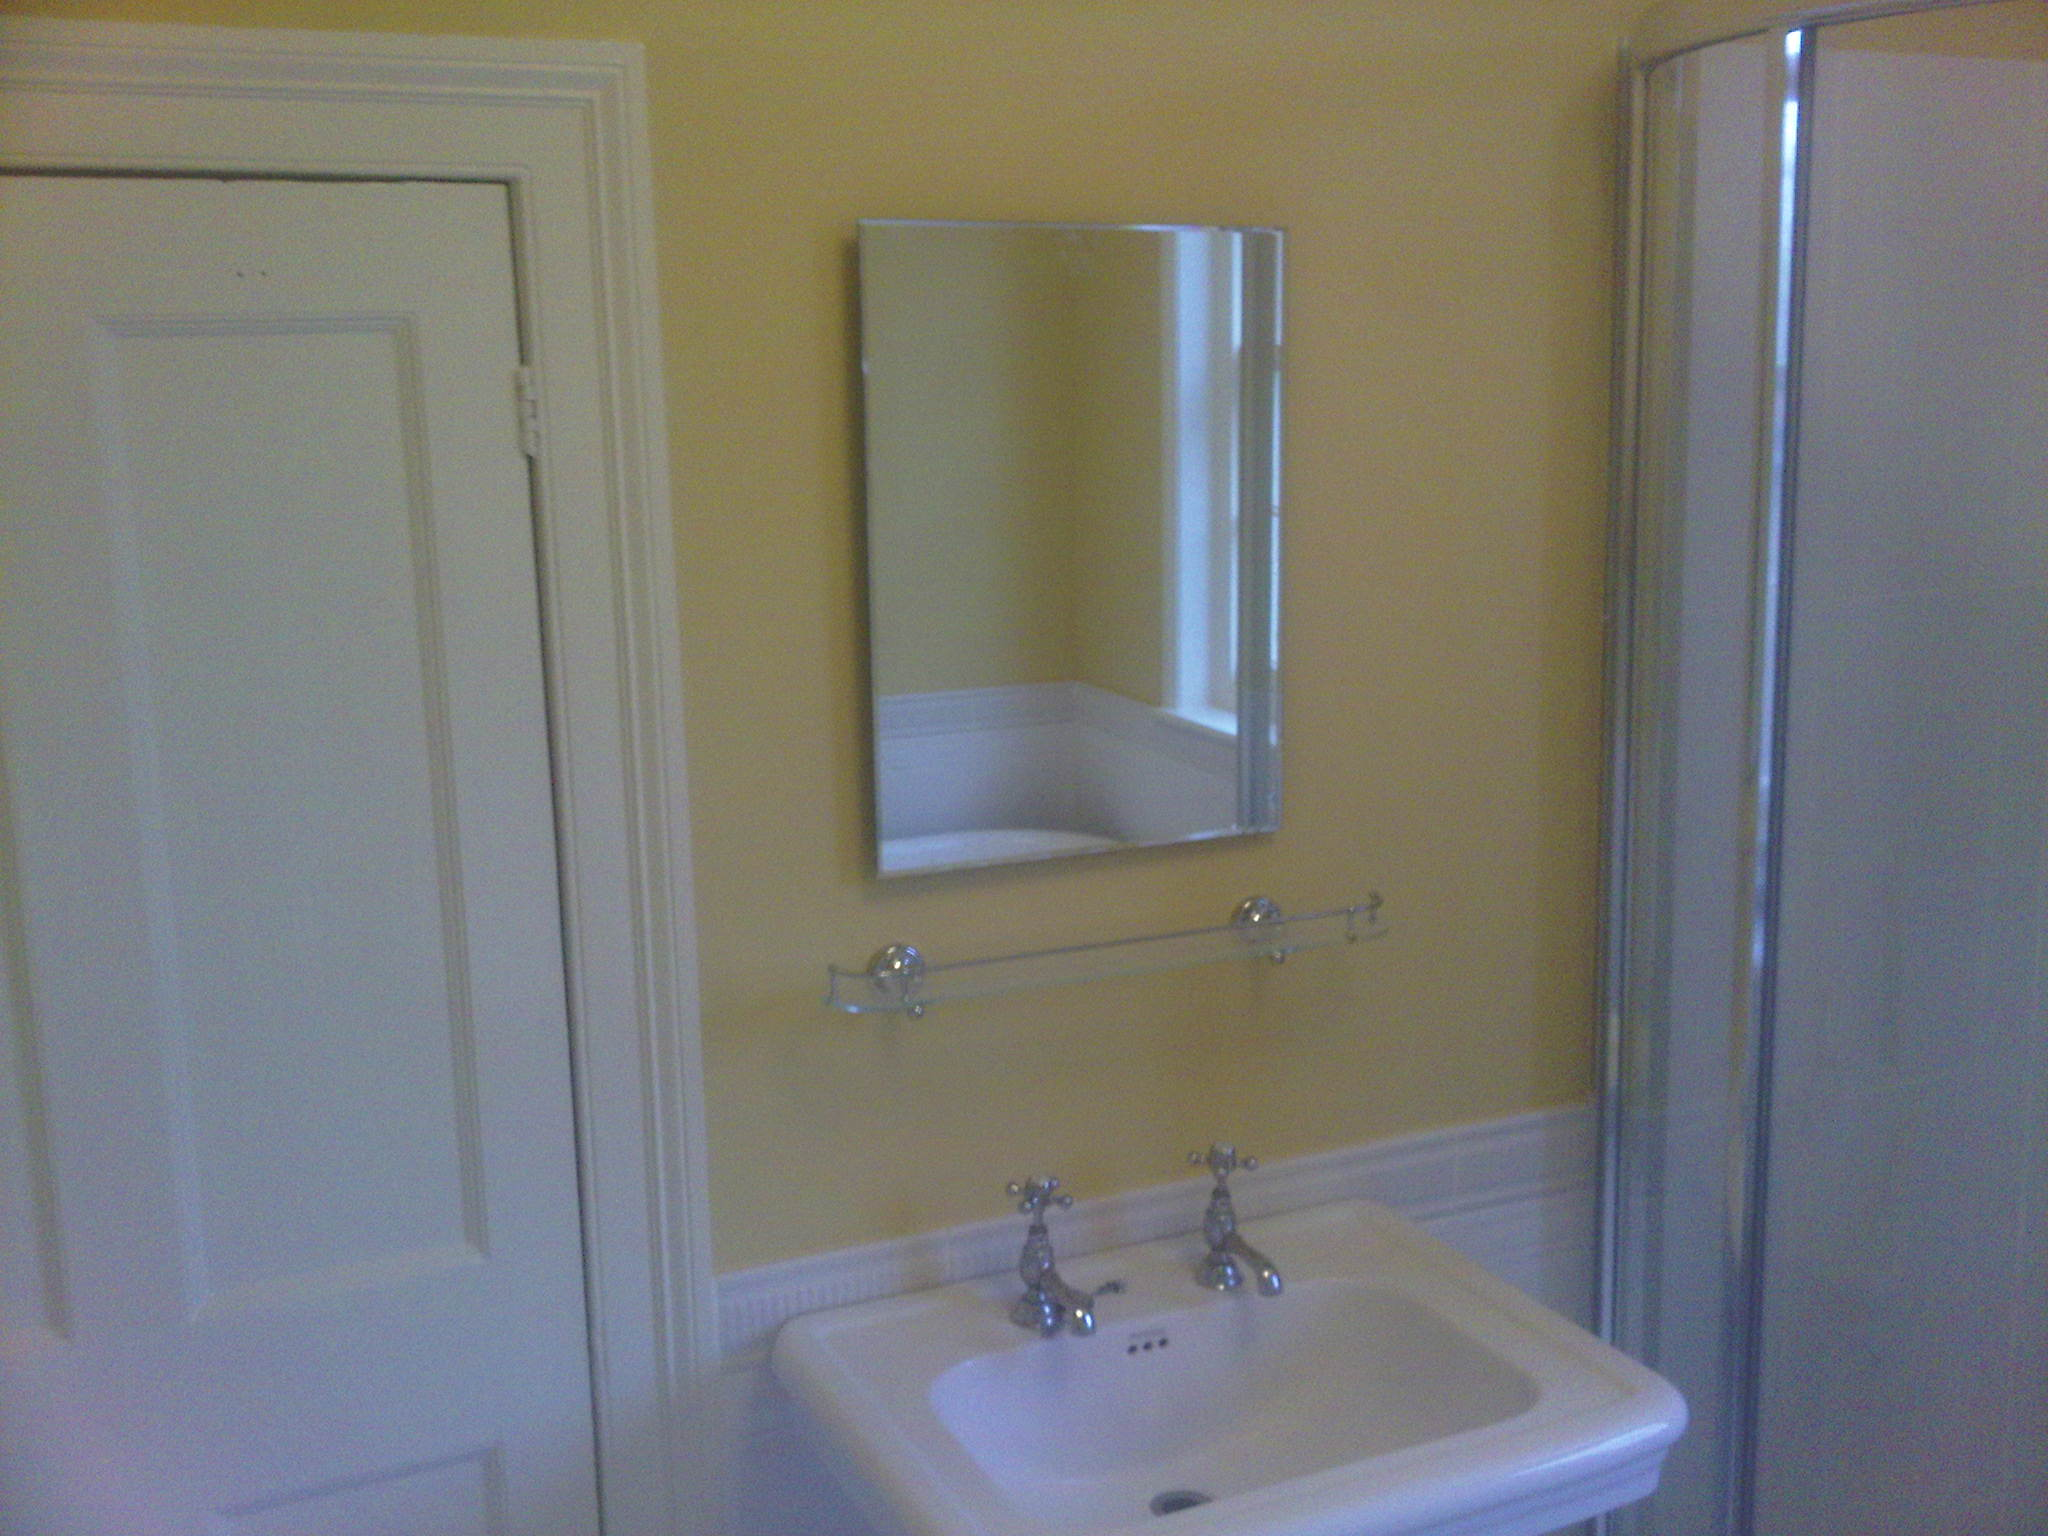 Bathroom prime finish cambridge for Bathroom design cambridge